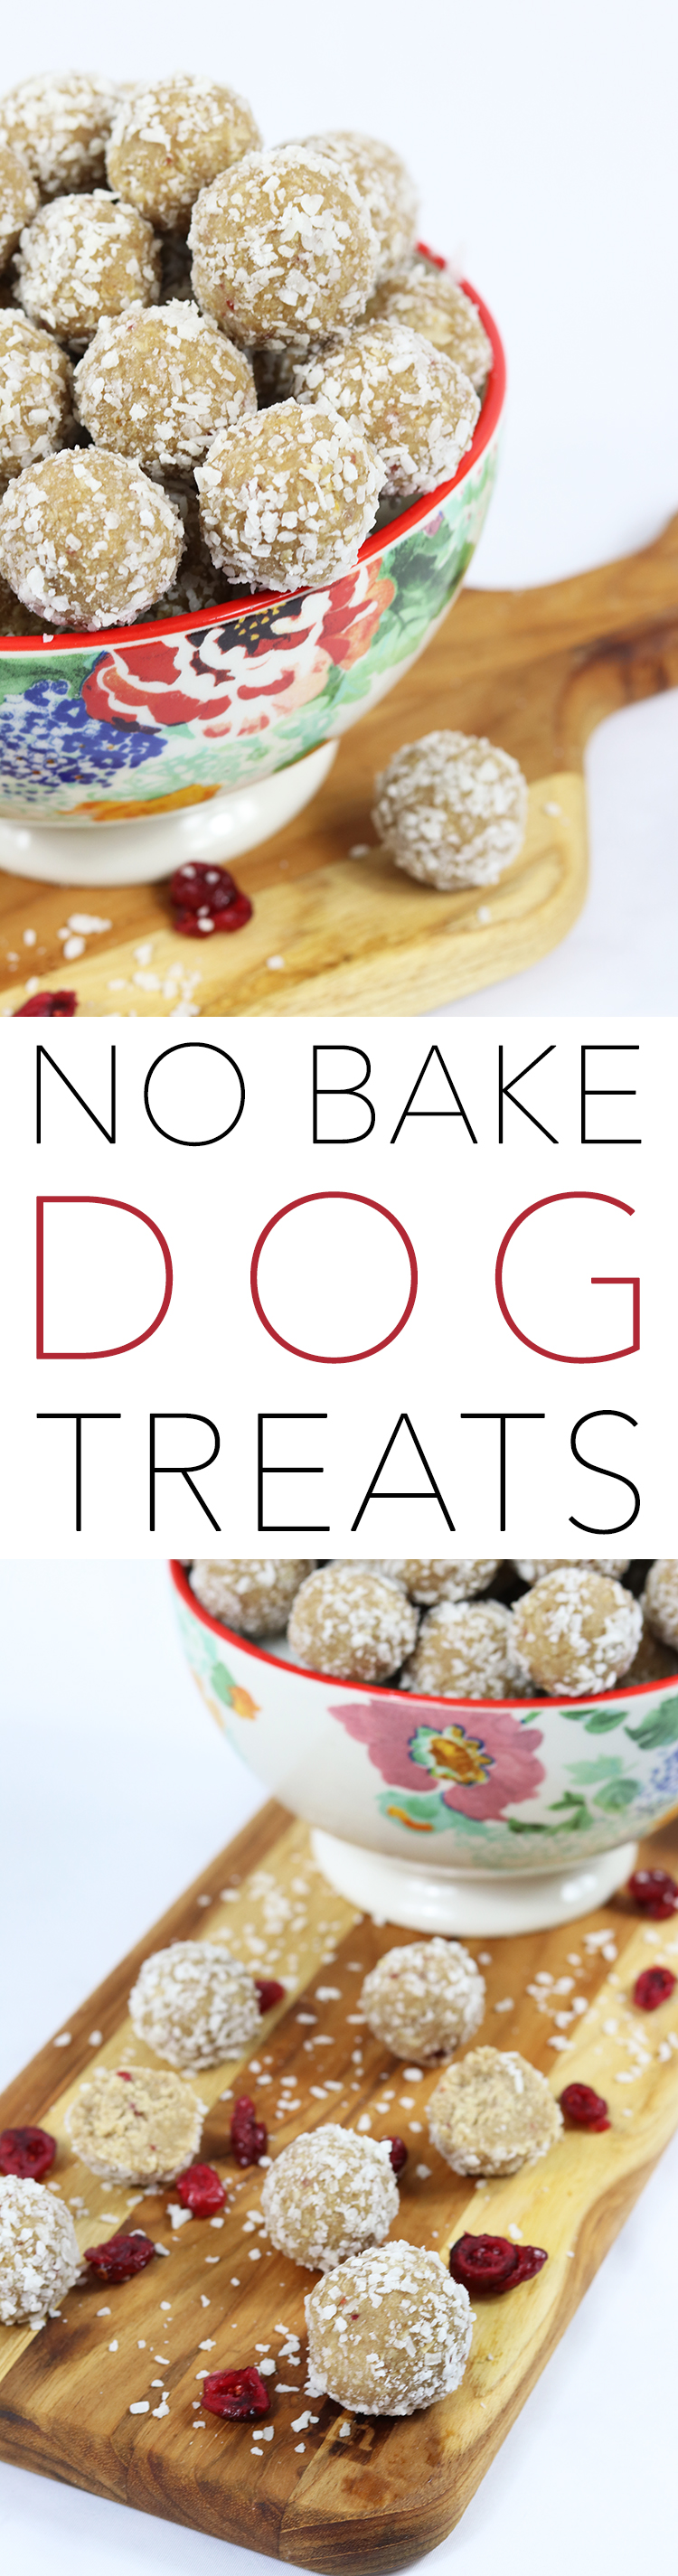 Quick and Easy No Bake Dog Treats